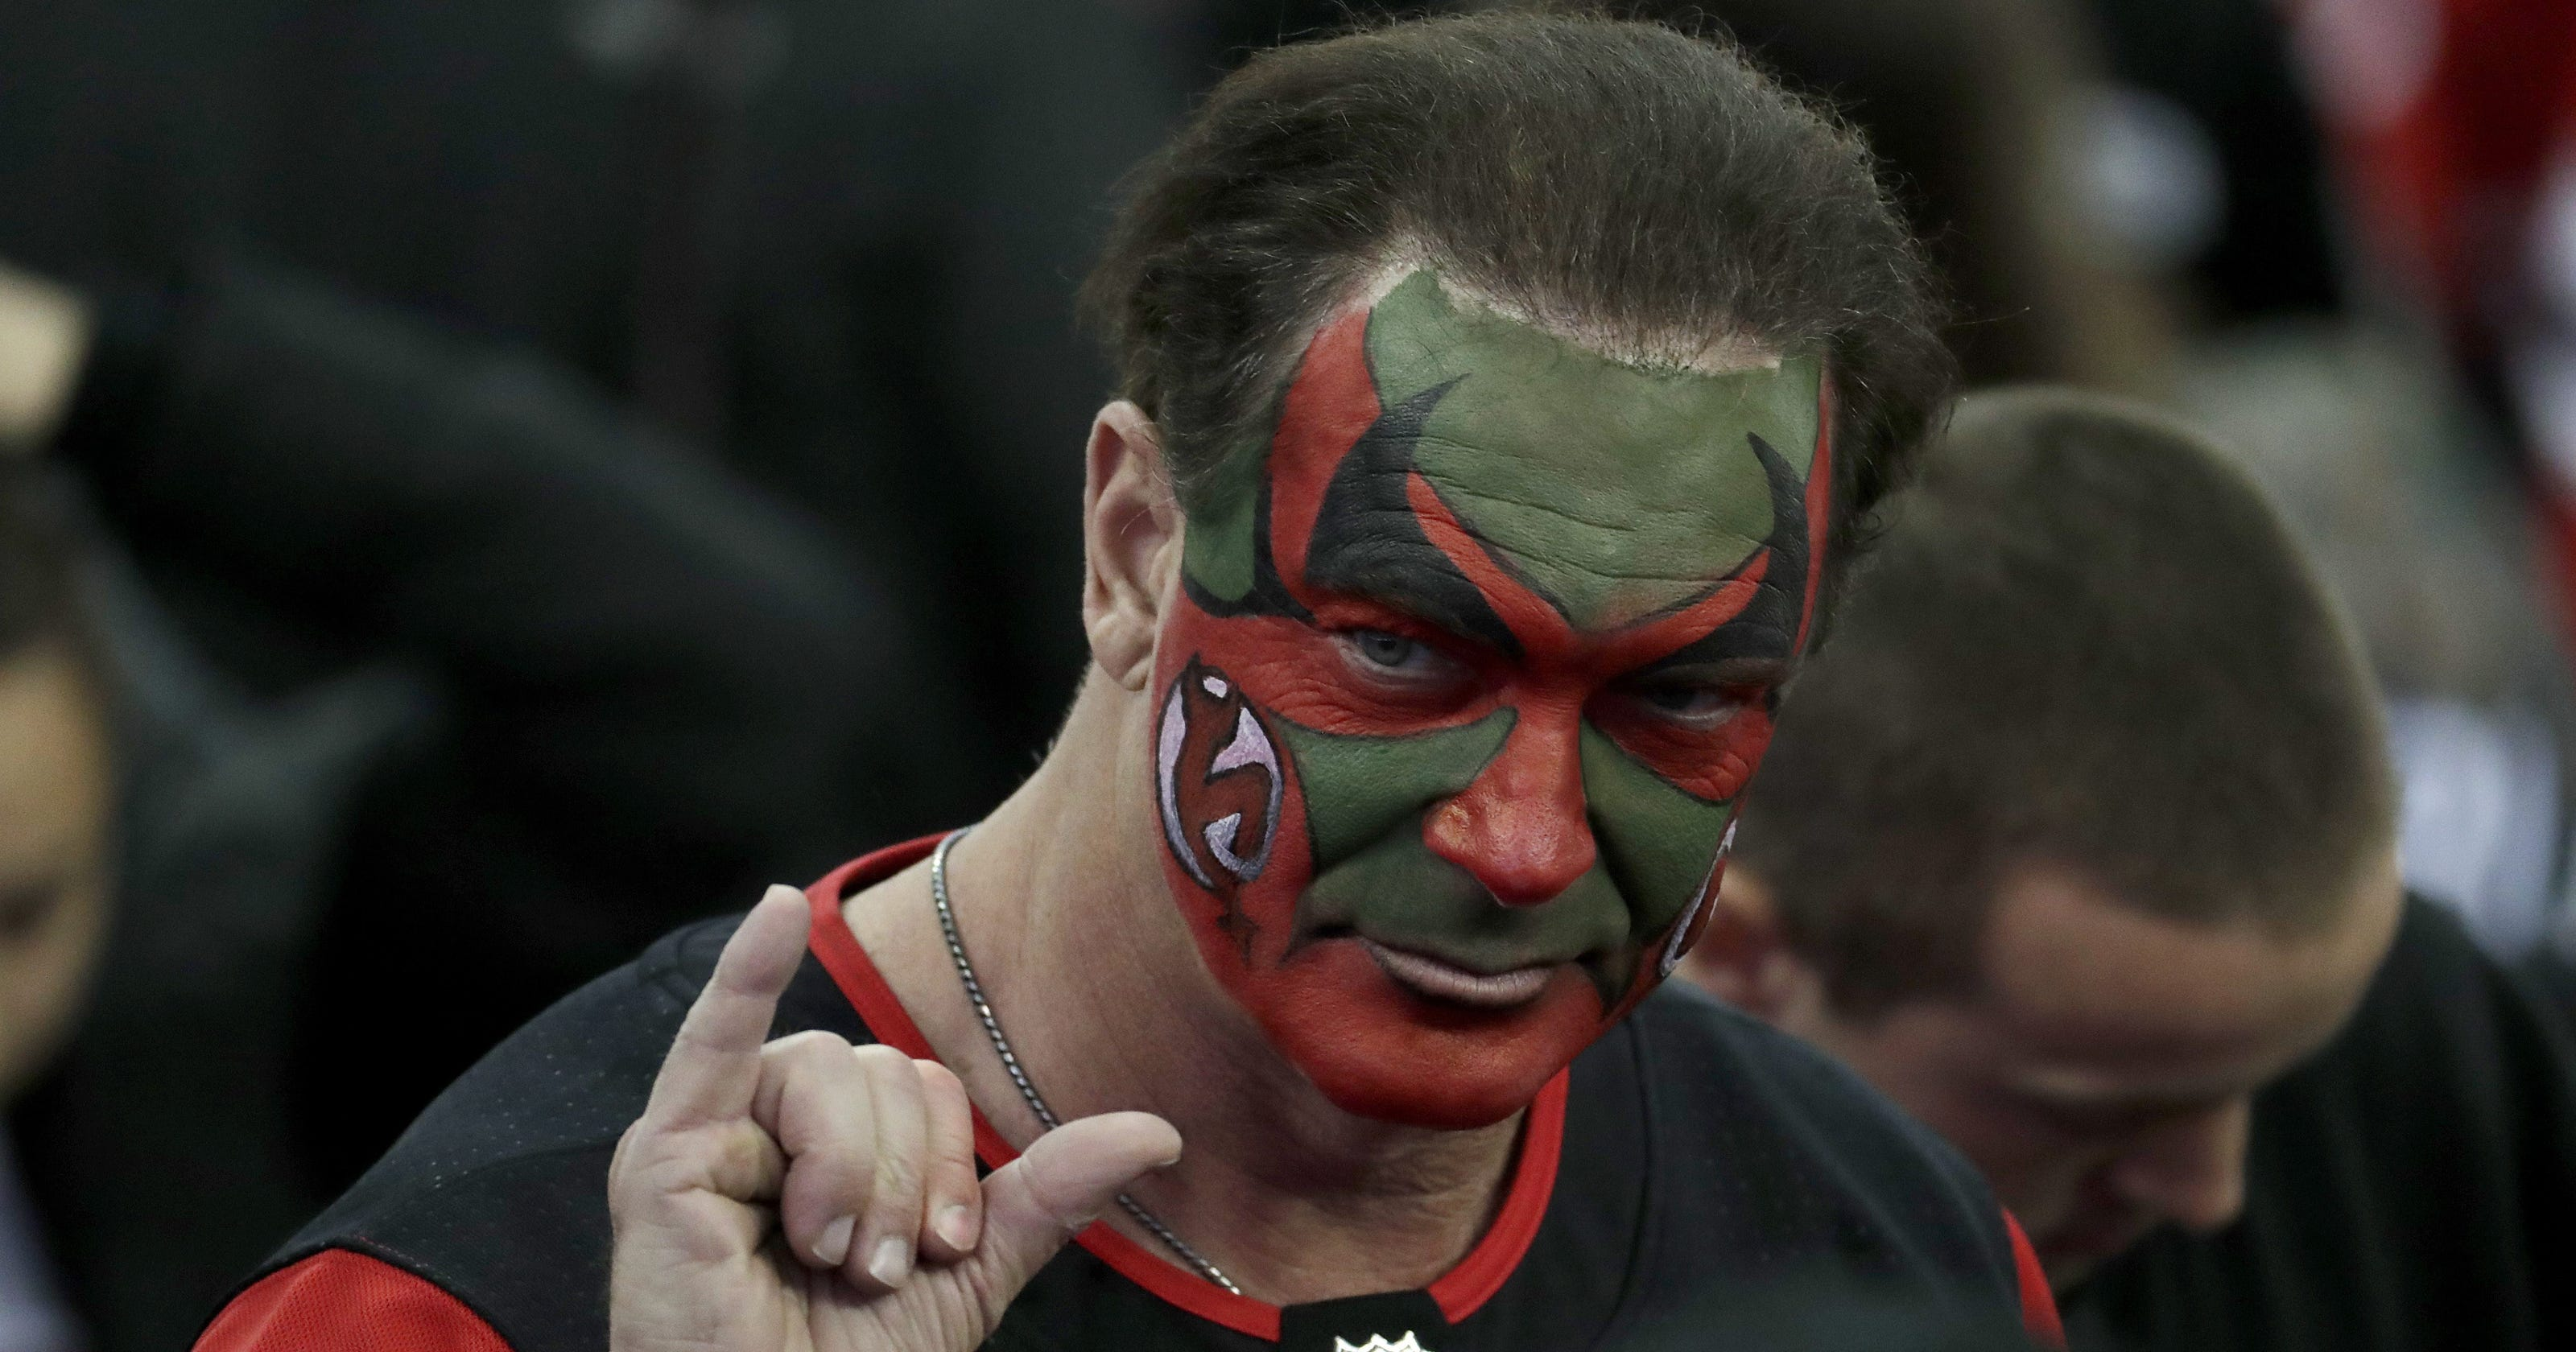 timeless design 43b19 10531 Actor who played David Puddy in 'Seinfeld' cheering on NJ Devils